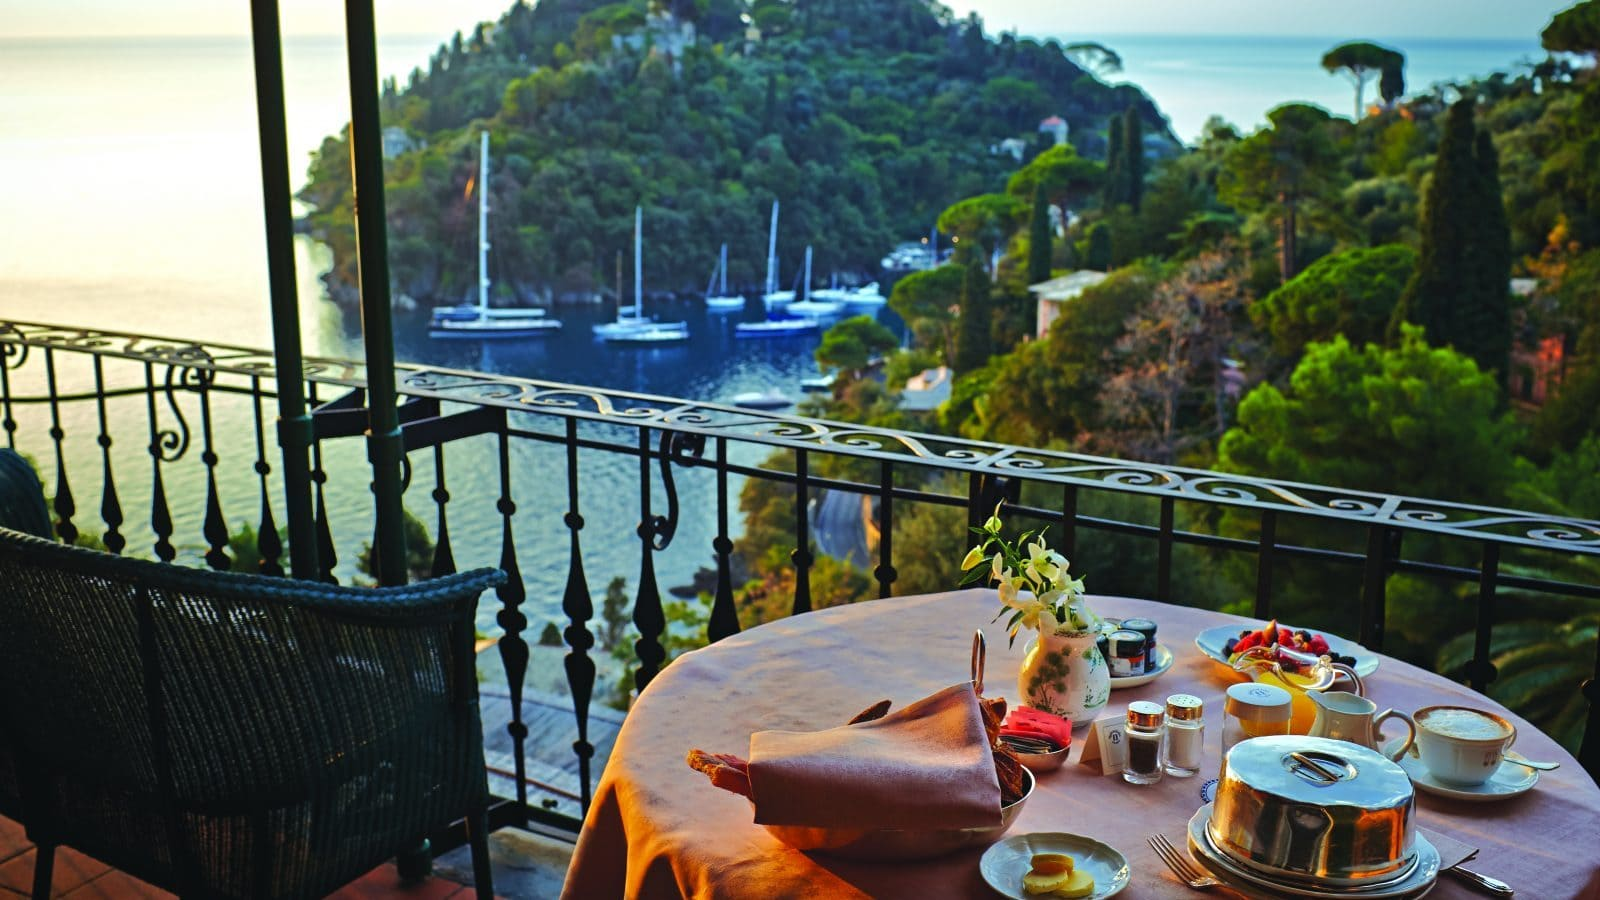 Window to the world: Portofino